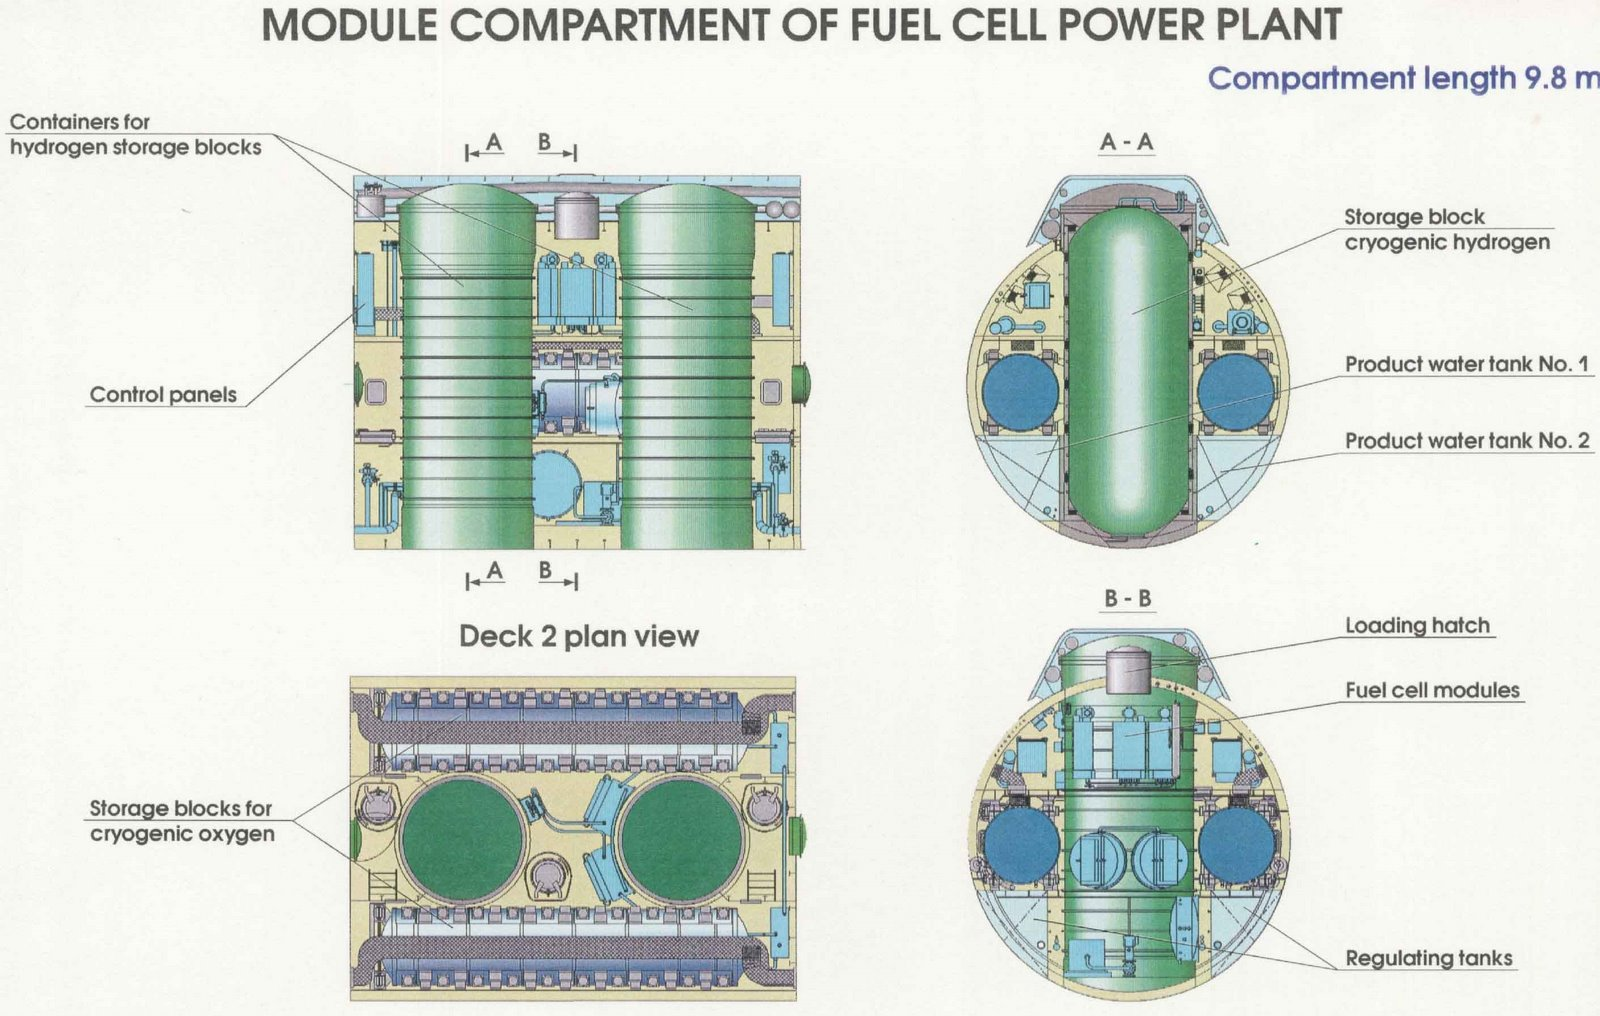 Dcns Closed Cycle Steam Turbine Mesma Aip Vs Drdo Fuel Cell Cells Diagram Standard System For Ins Kalvari Class Ssks